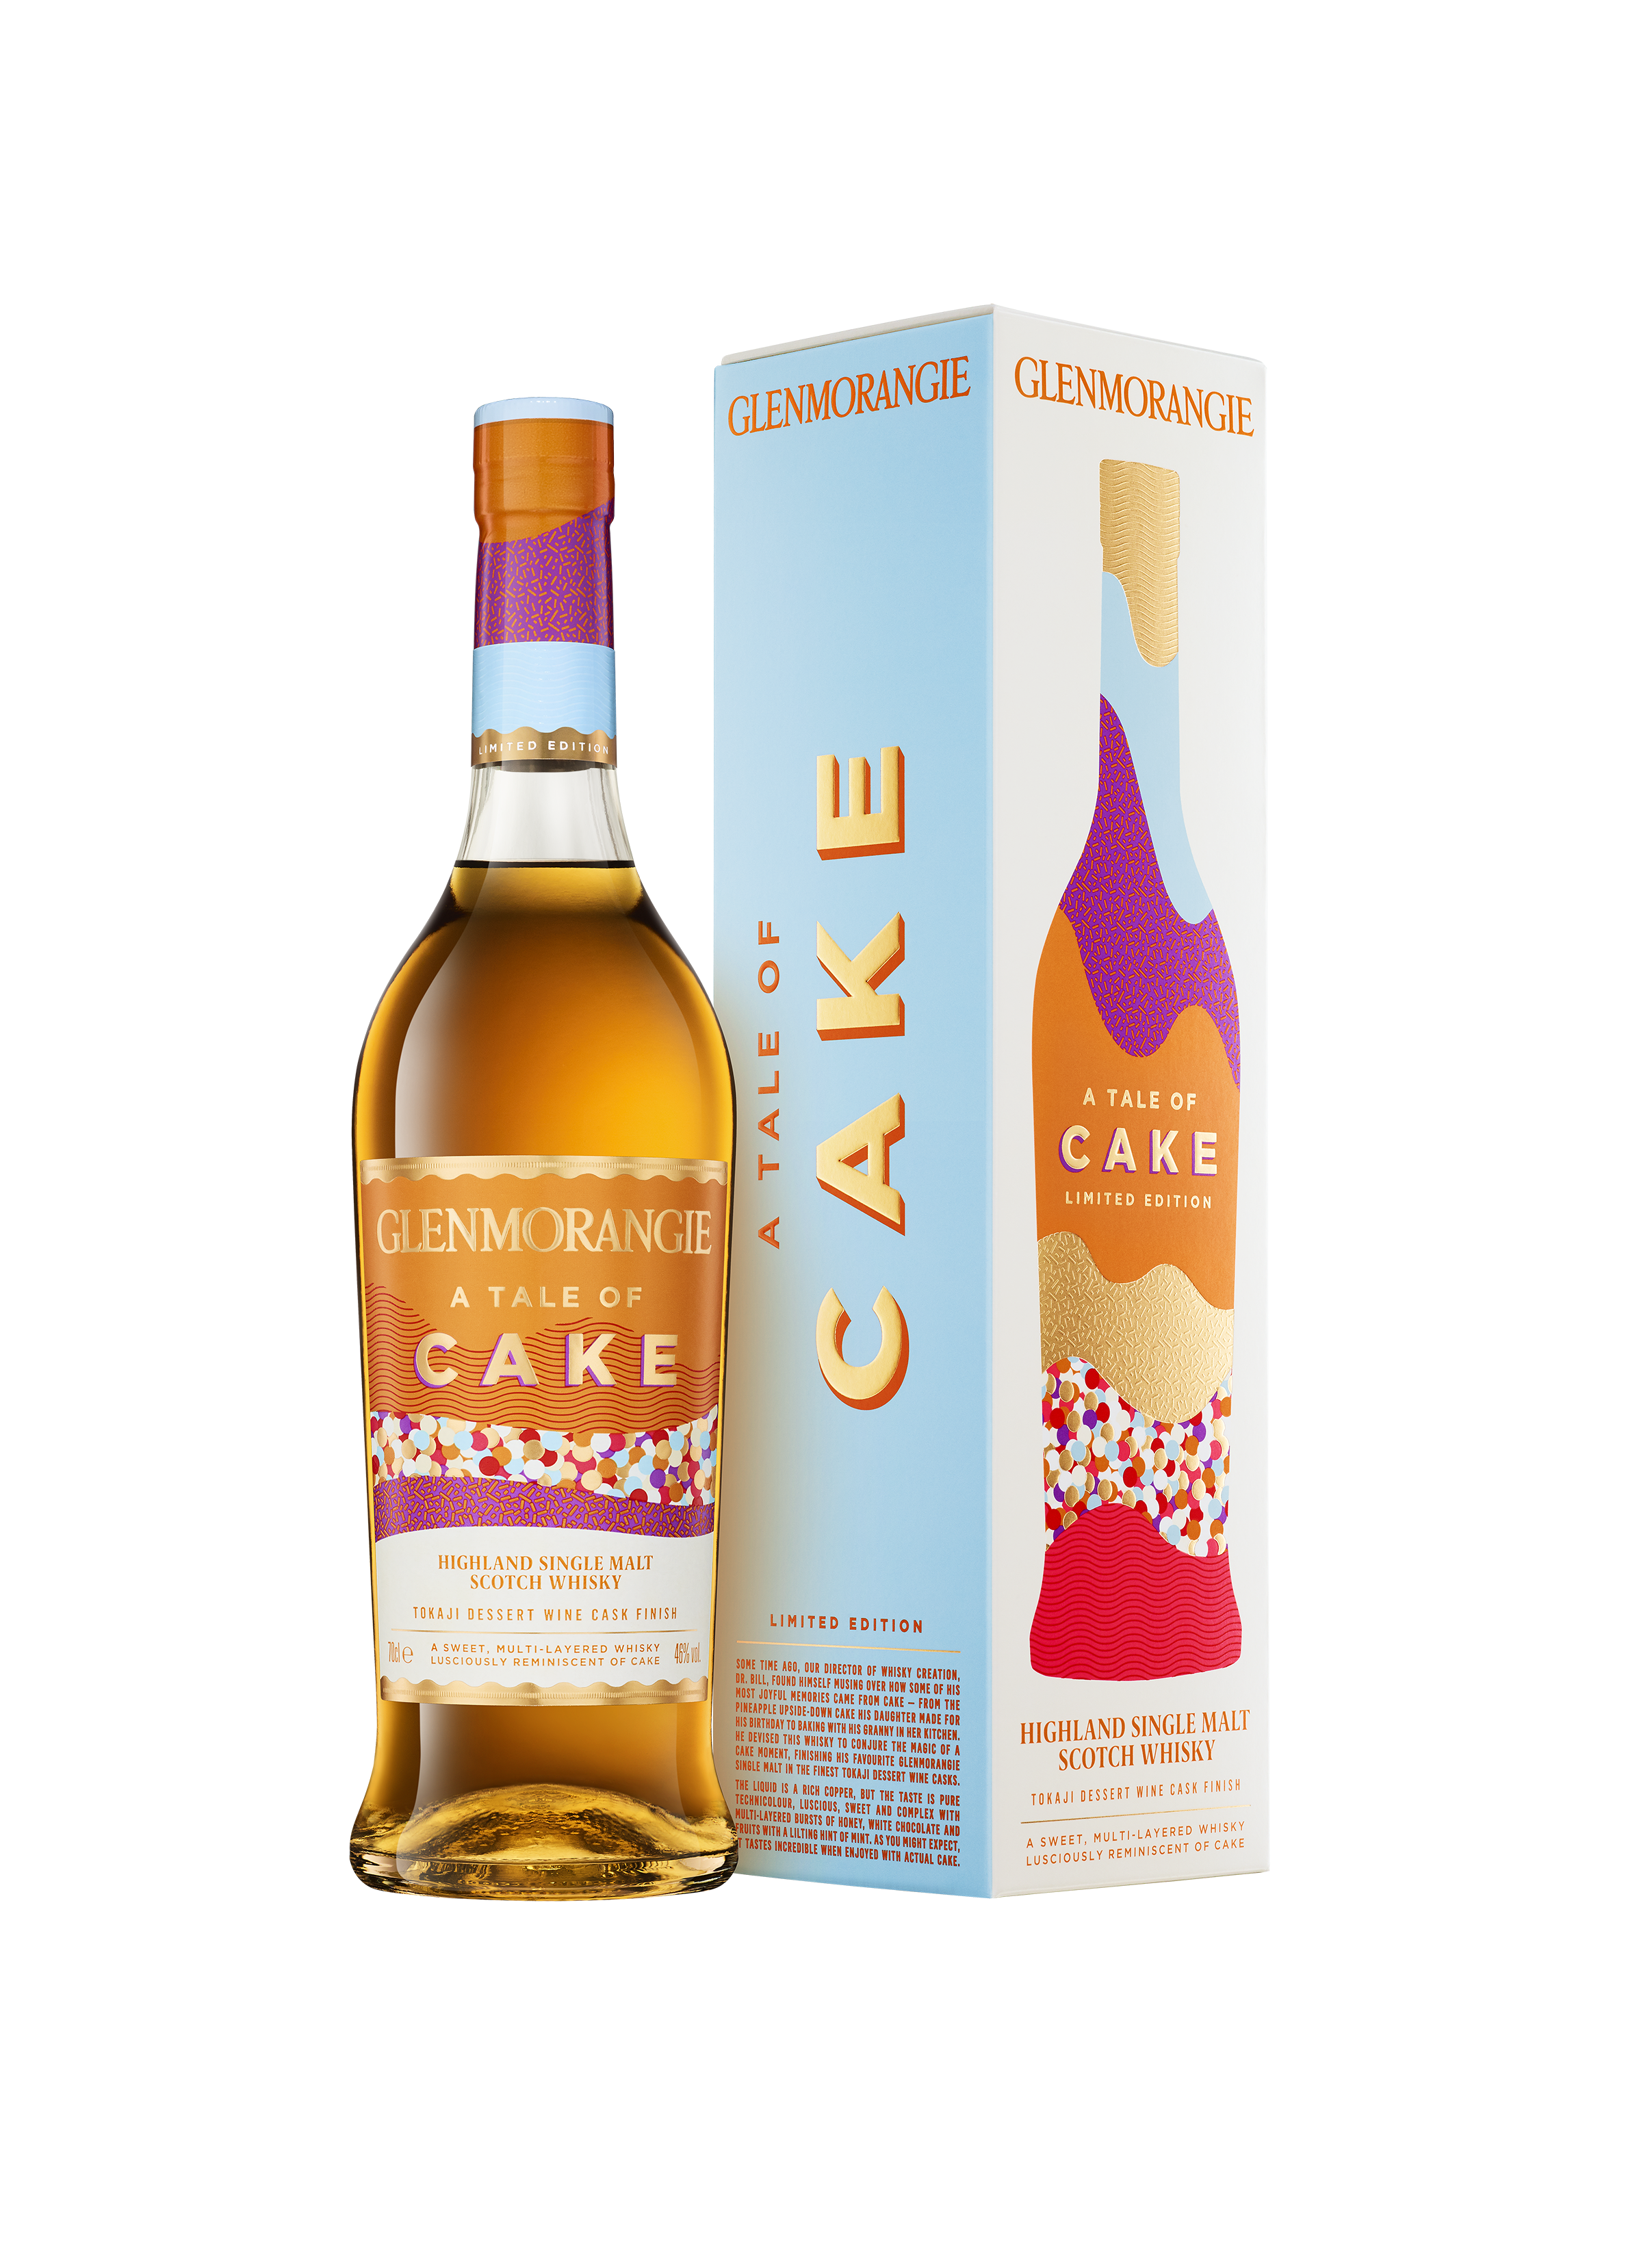 Glenmorangie Tale Of Cake Bottle And 1 Pack On Transparent LoRes